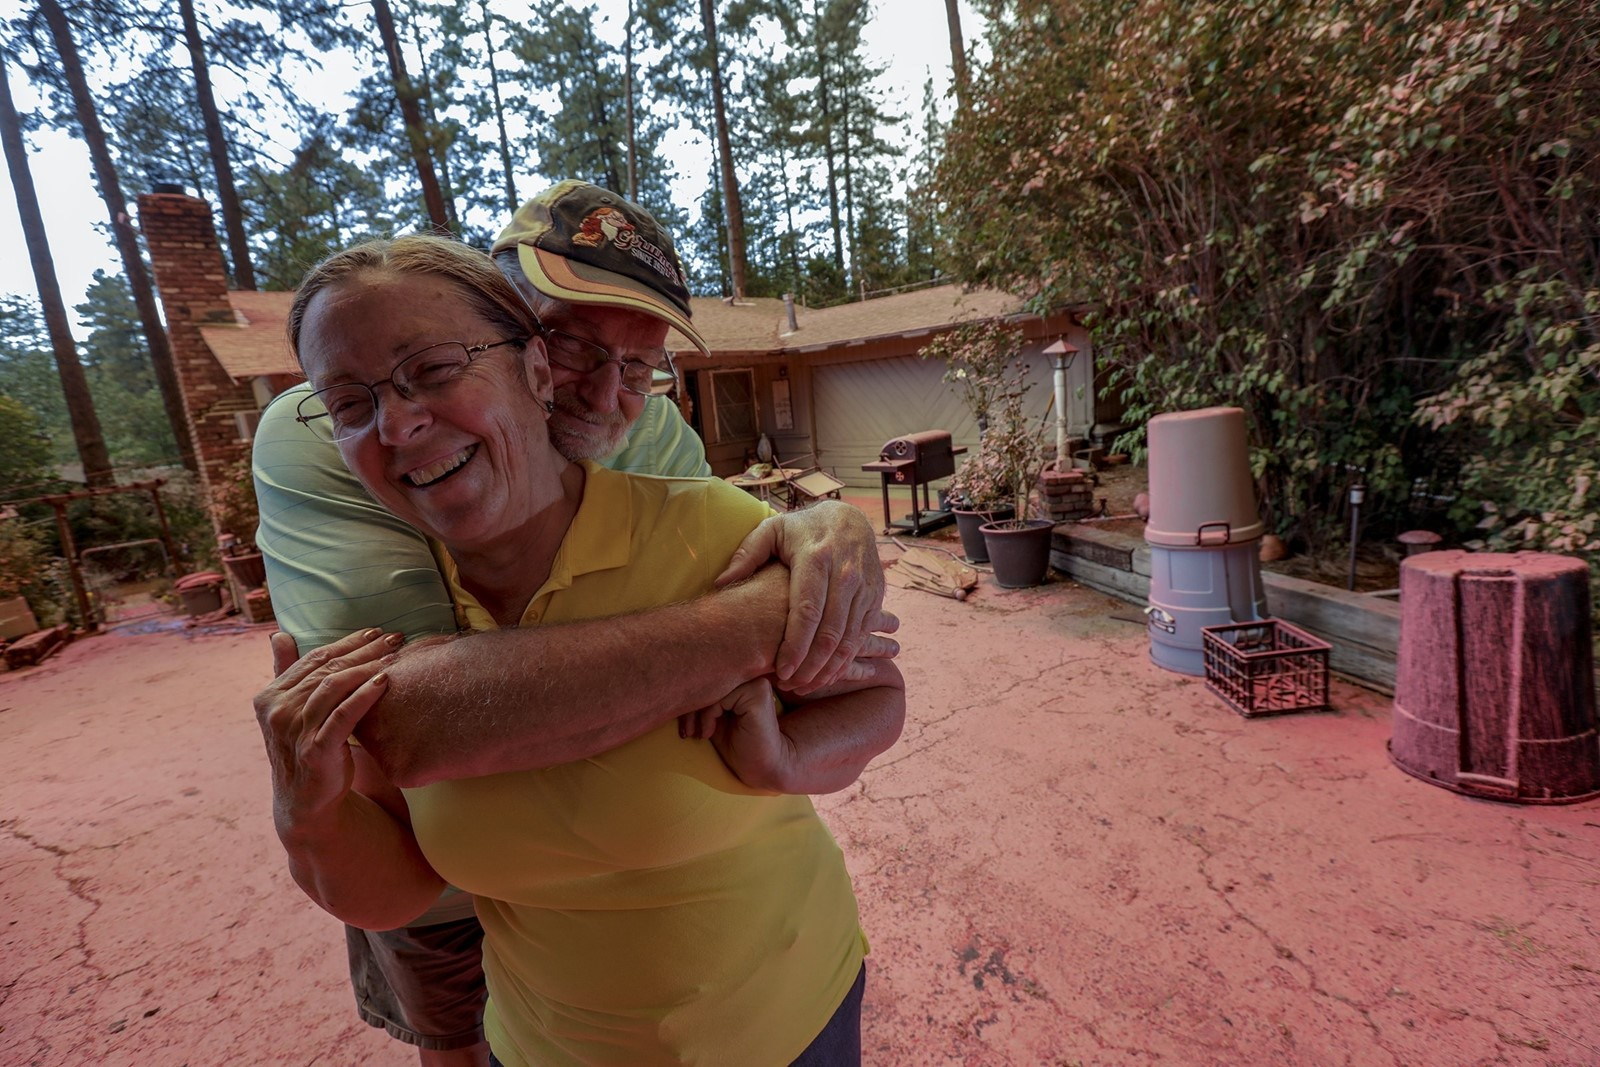 Steve and Suzanne Coffer, longtime residents of Idyllwild, rushed home on Wednesday to see their house on Deer Foot Lane coated in a pink fire retardant. — Photograph: Irfan Khan/Los Angeles Times.